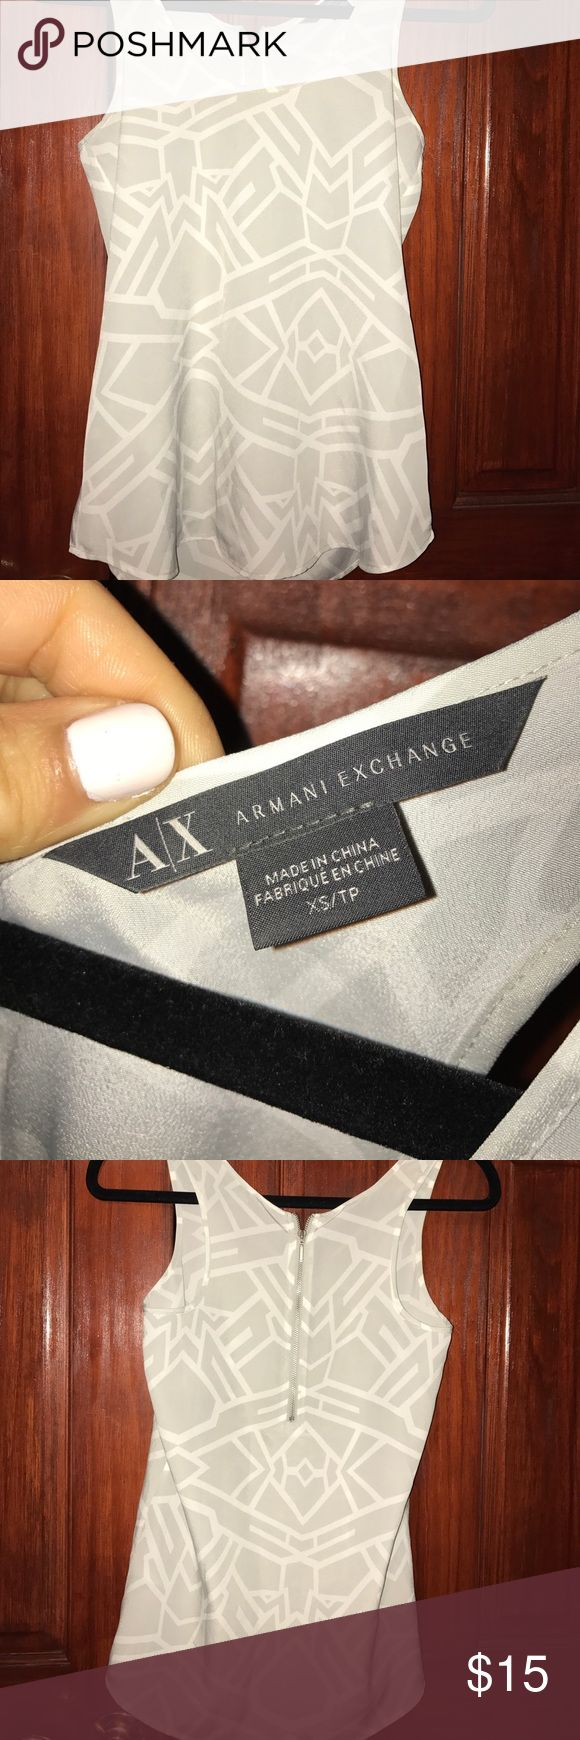 Amani exchange tops XS Grey and white A/X Armani Exchange Tops Tank Tops